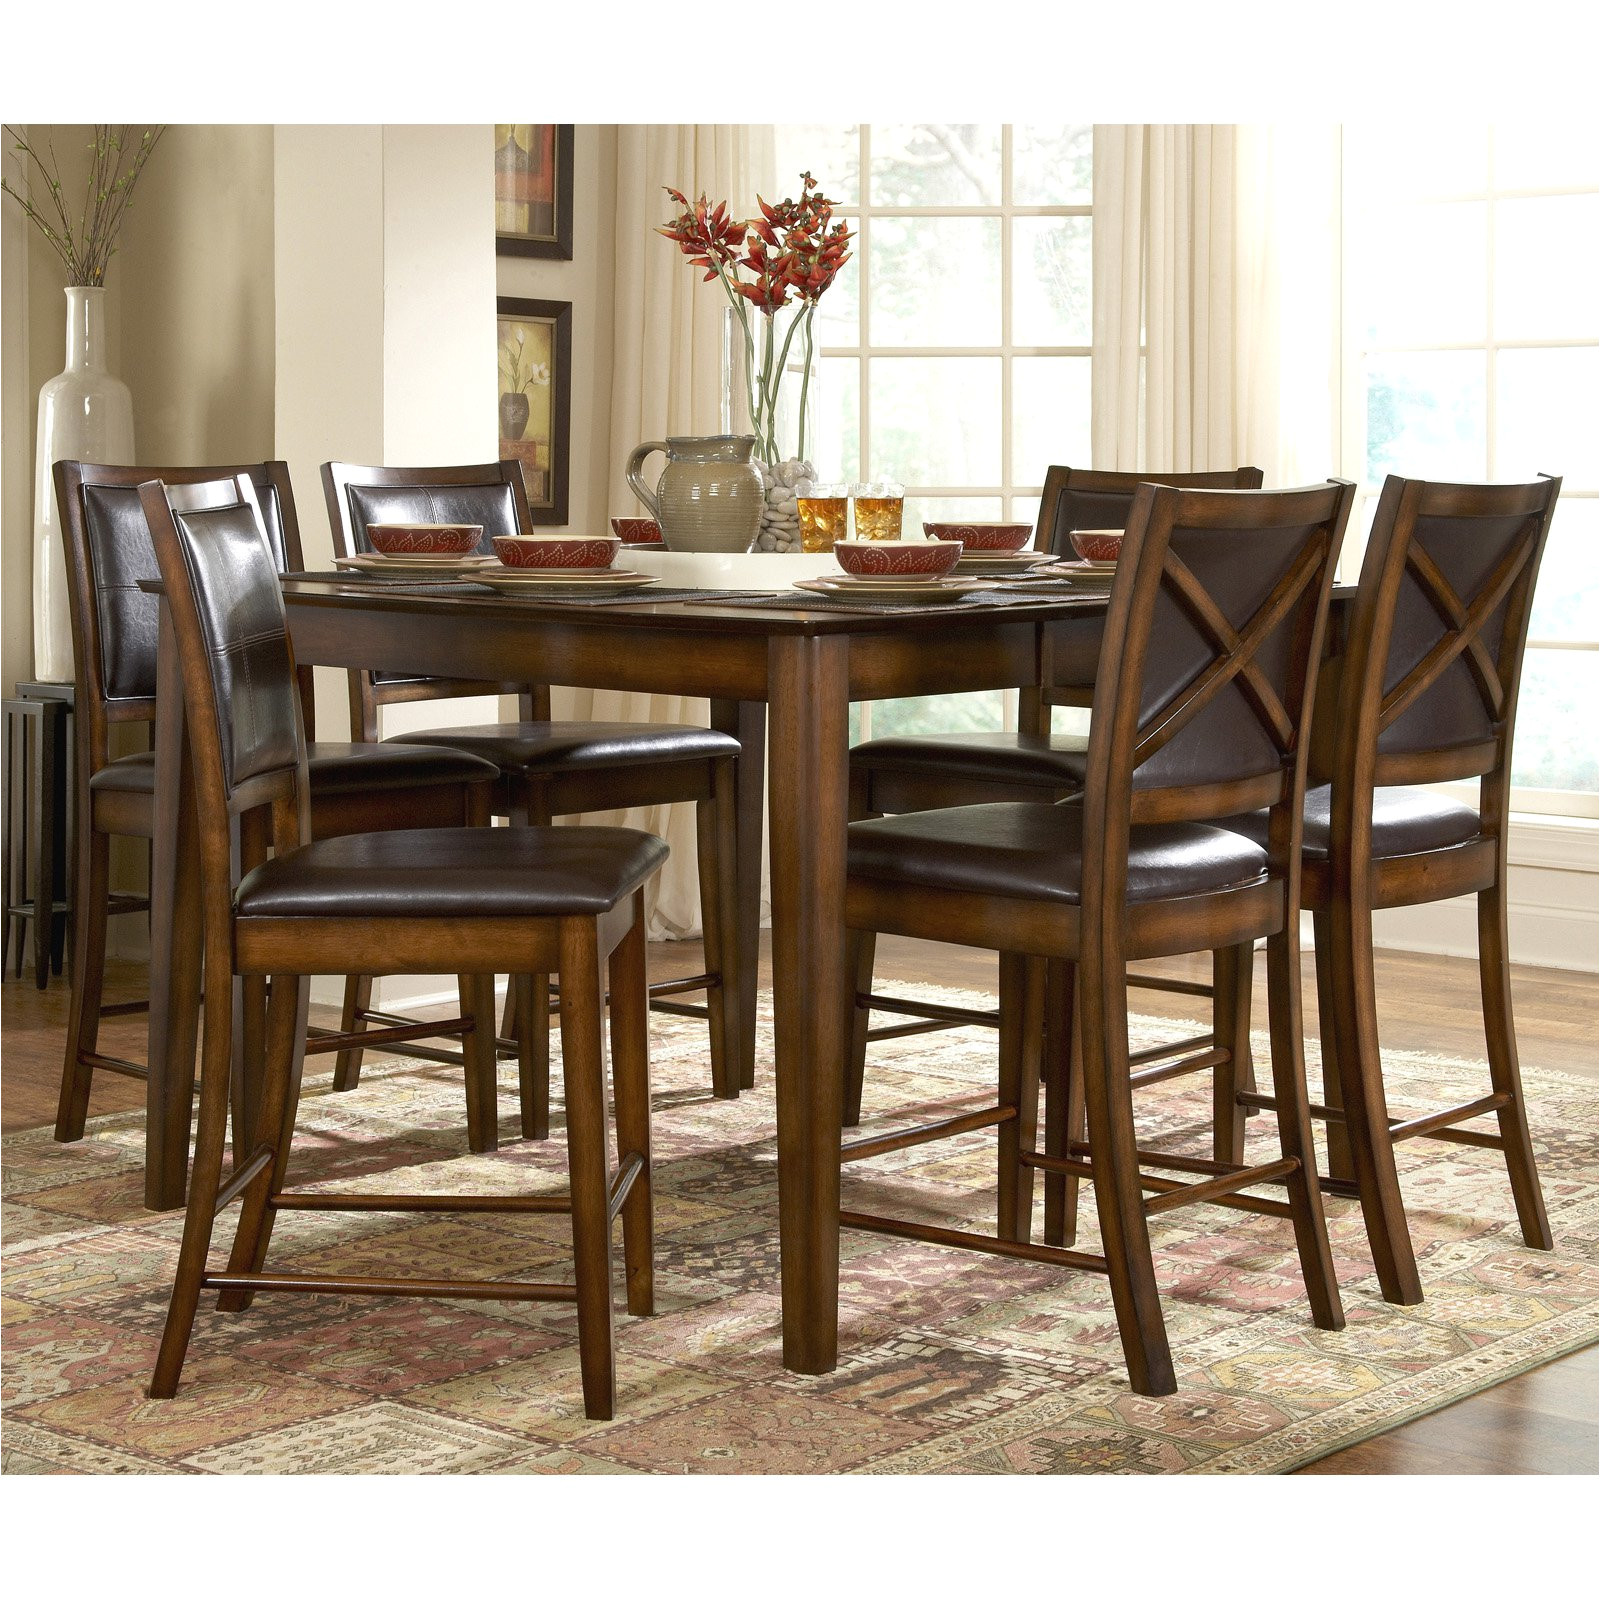 full size of glass for wooden seats chairs sets table lowes and height costco granite counter